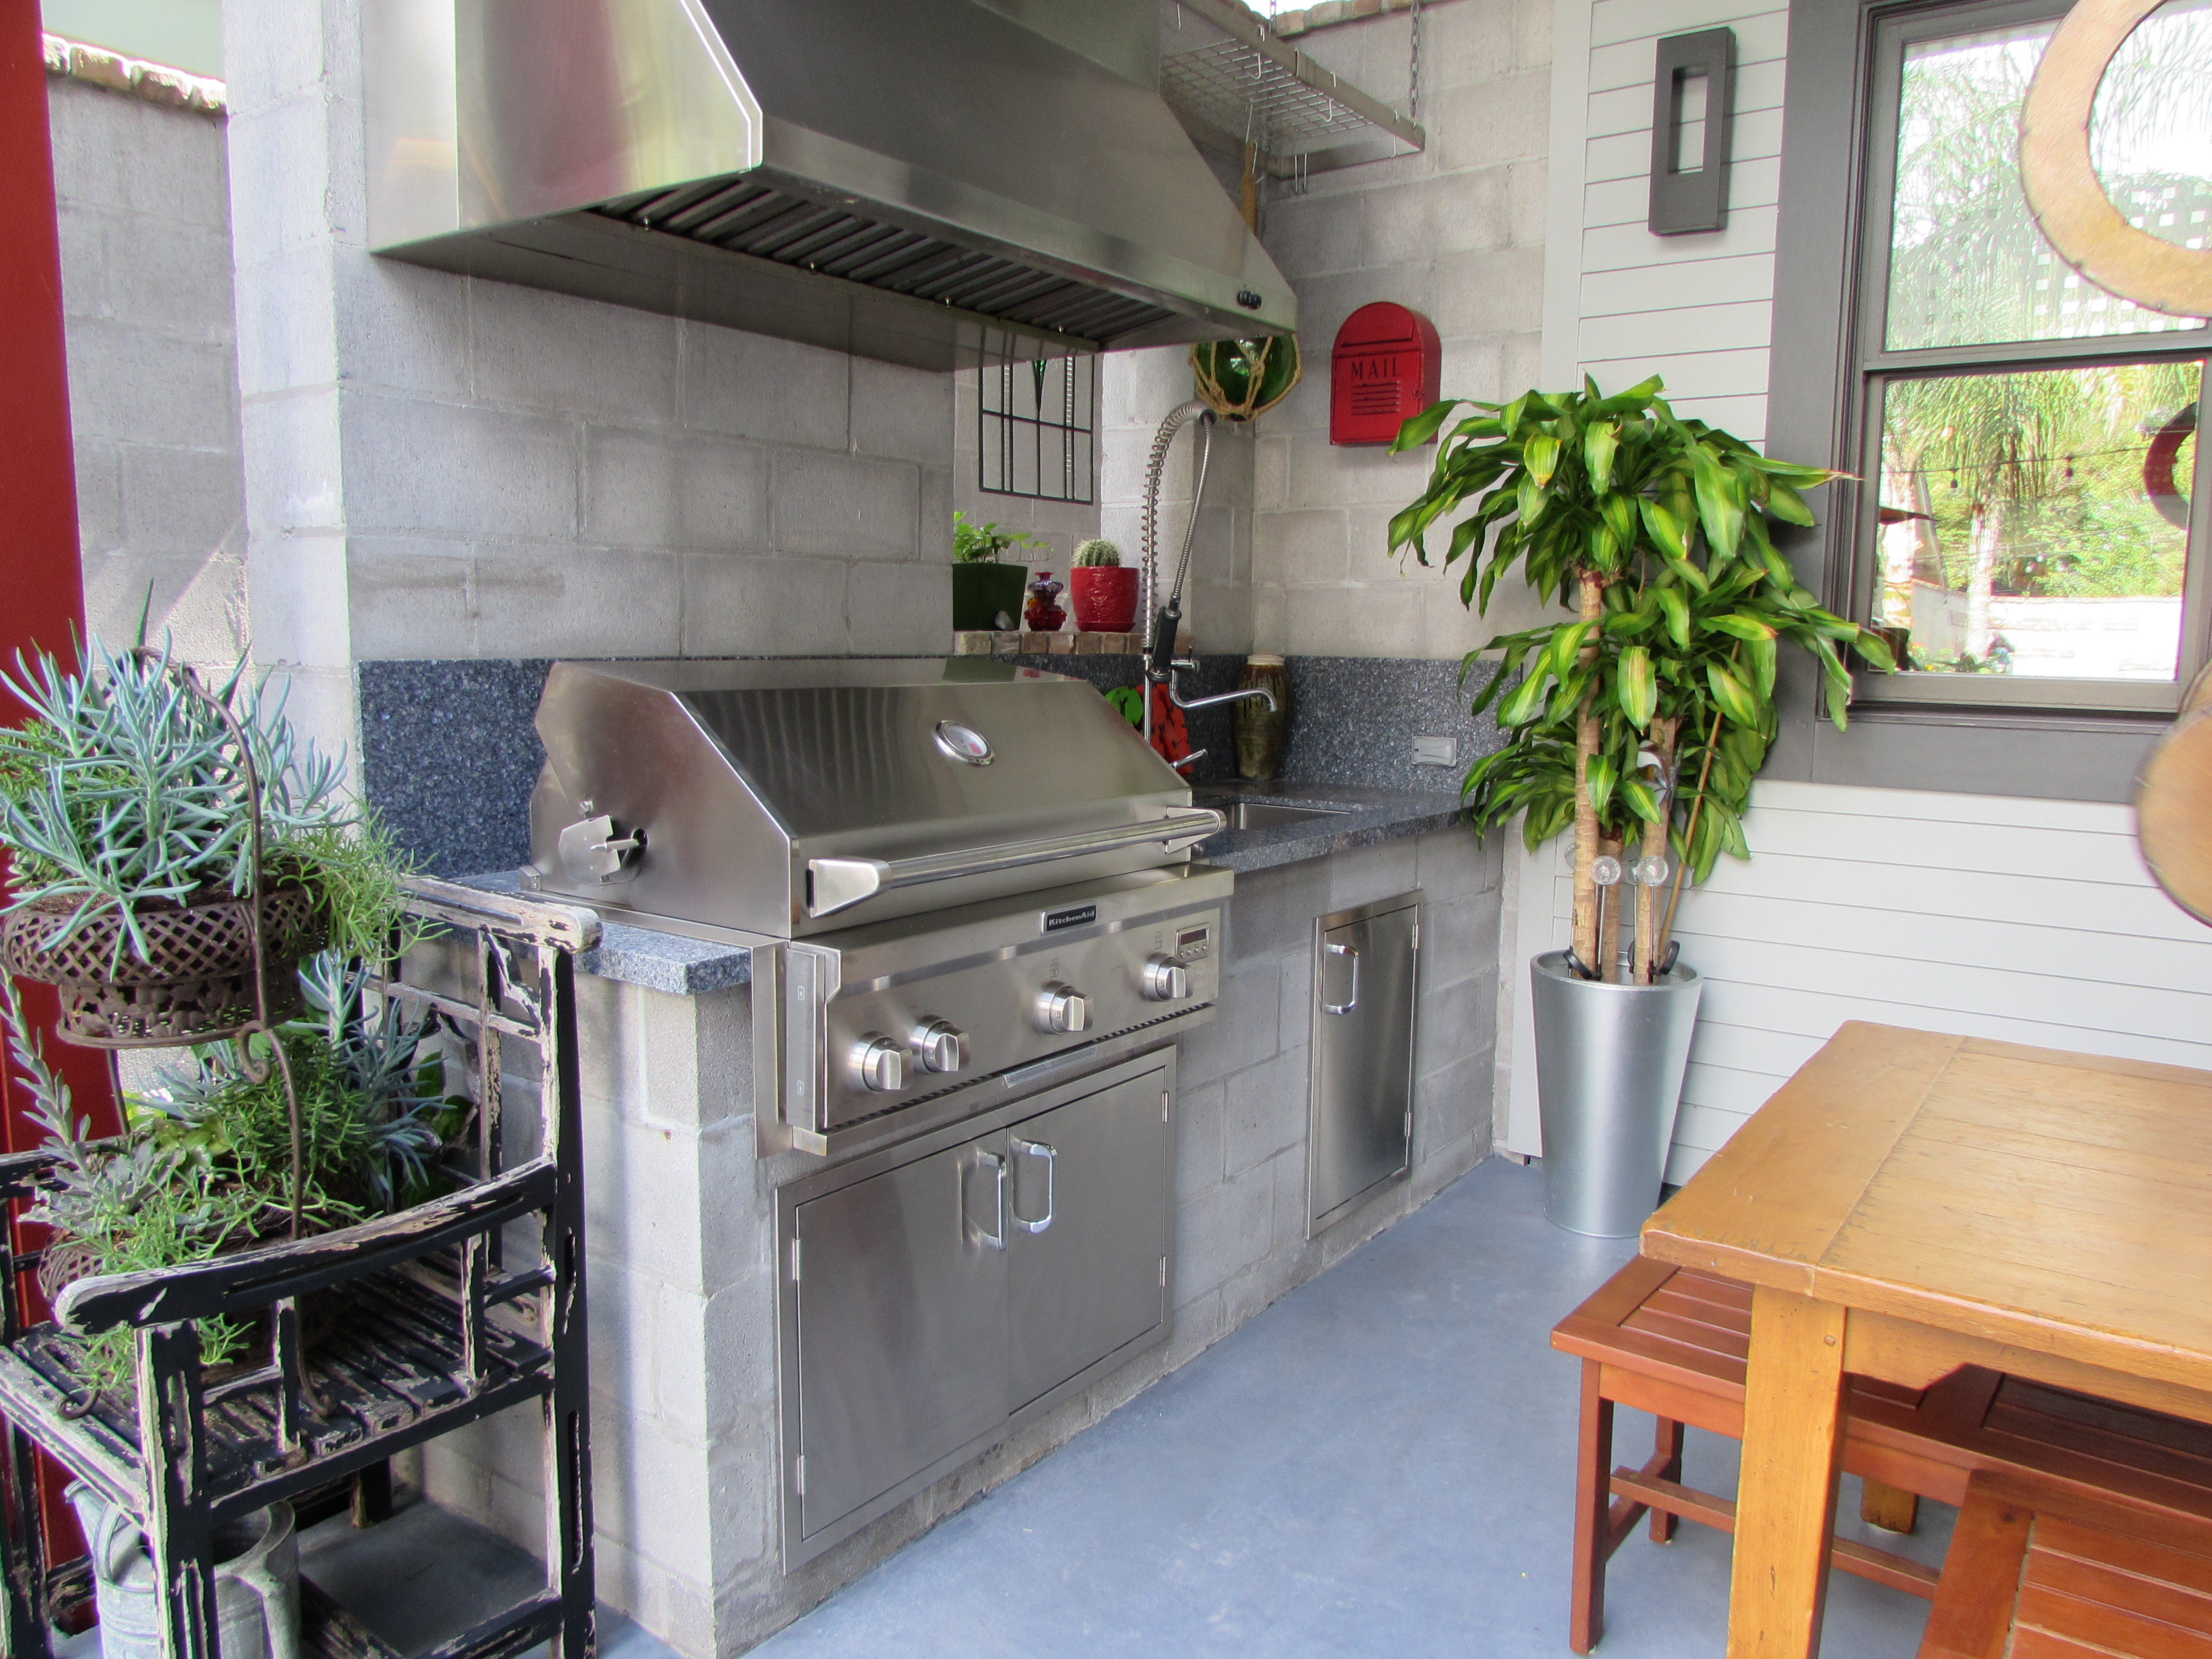 Heights garden club tour arts and crafts style home full for Outdoor kitchen under deck